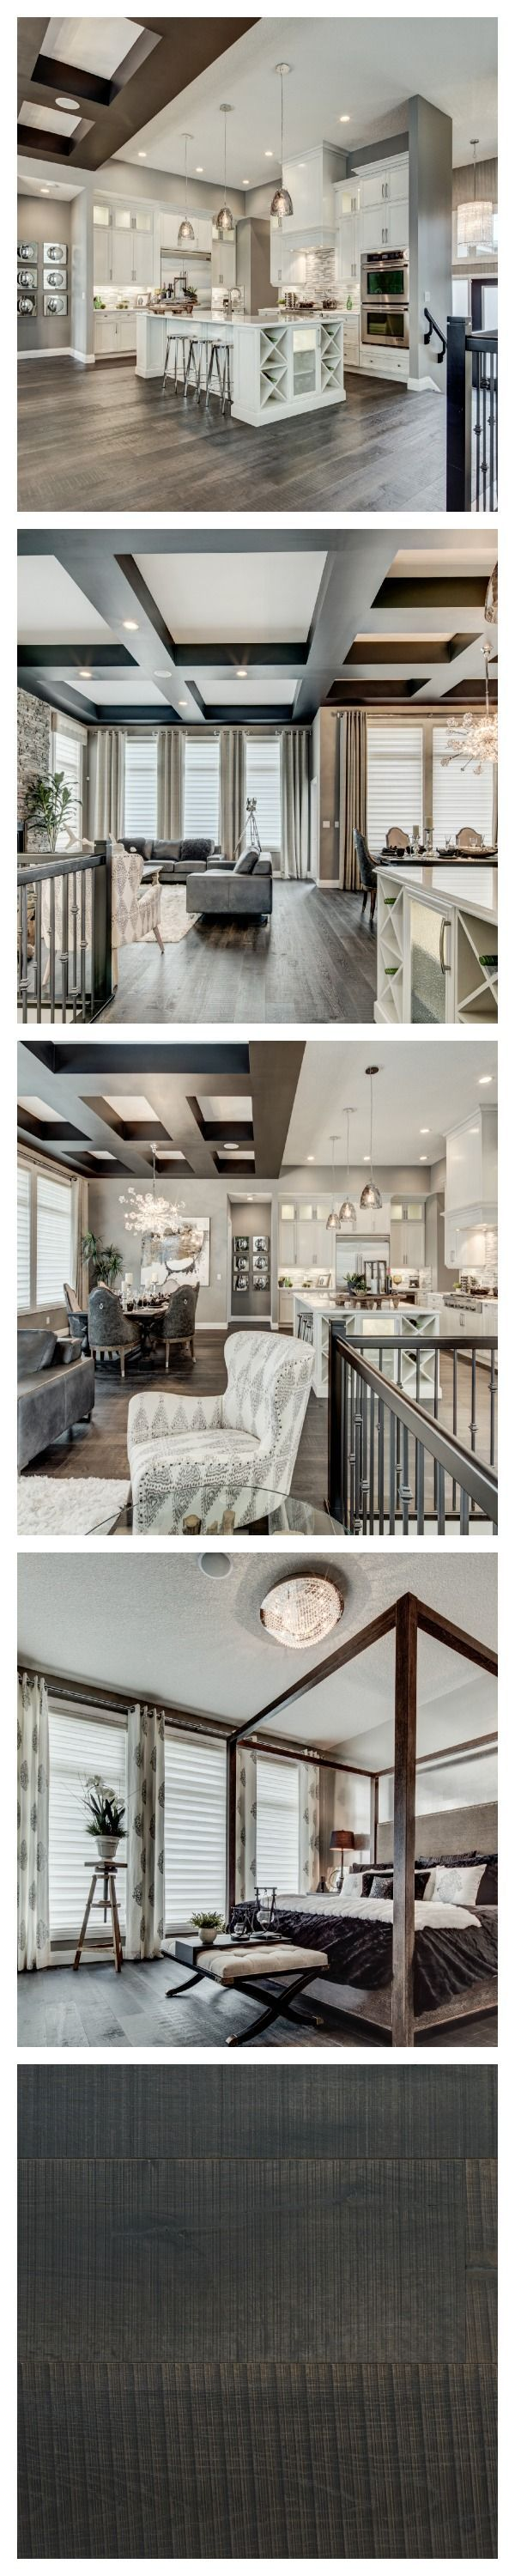 There is a decidedly glamorous edge to this breathtaking model home by Alquinn Homes in Edmonton. The sophisticated palette of greys and creams adds to the luxe appeal. #Farmhouse flooring in the colour Le Bourg. #floors